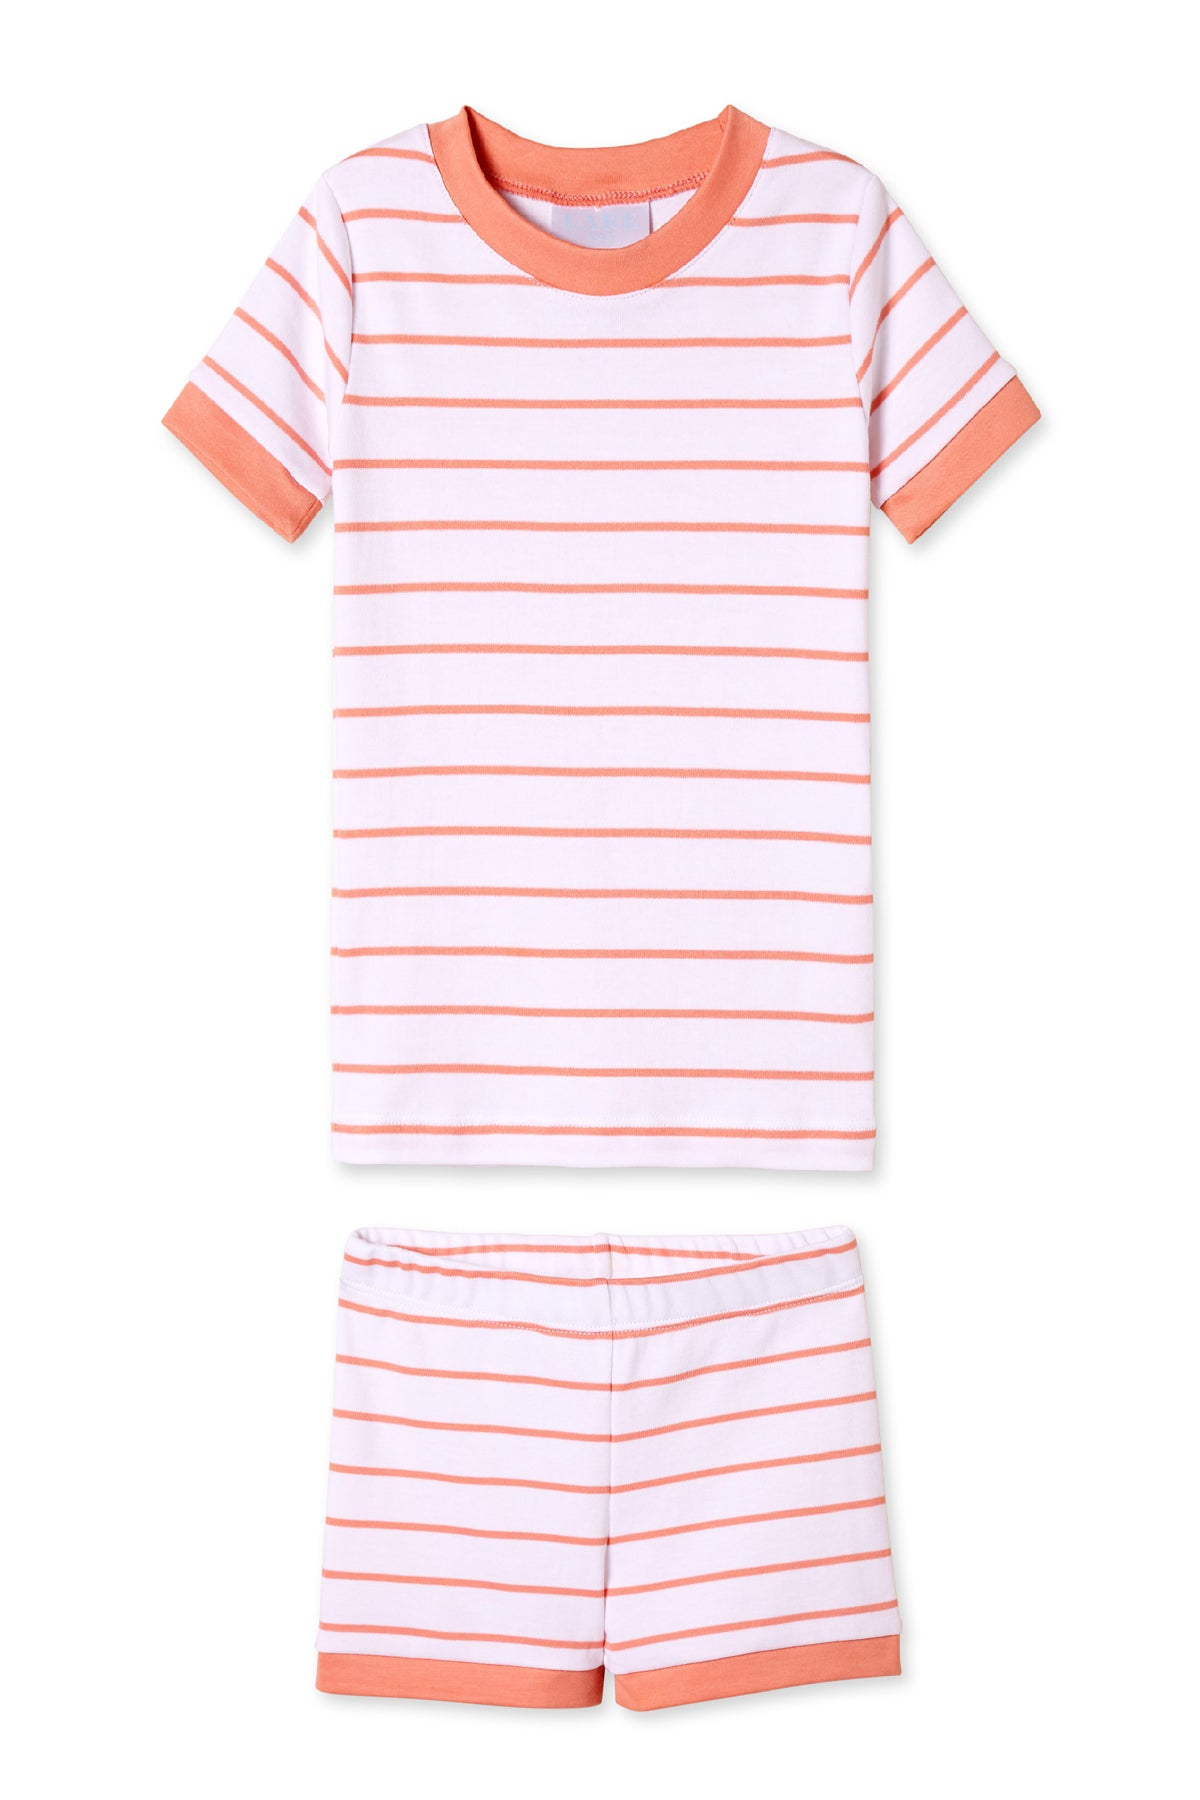 Kids Shorts Set in Coral